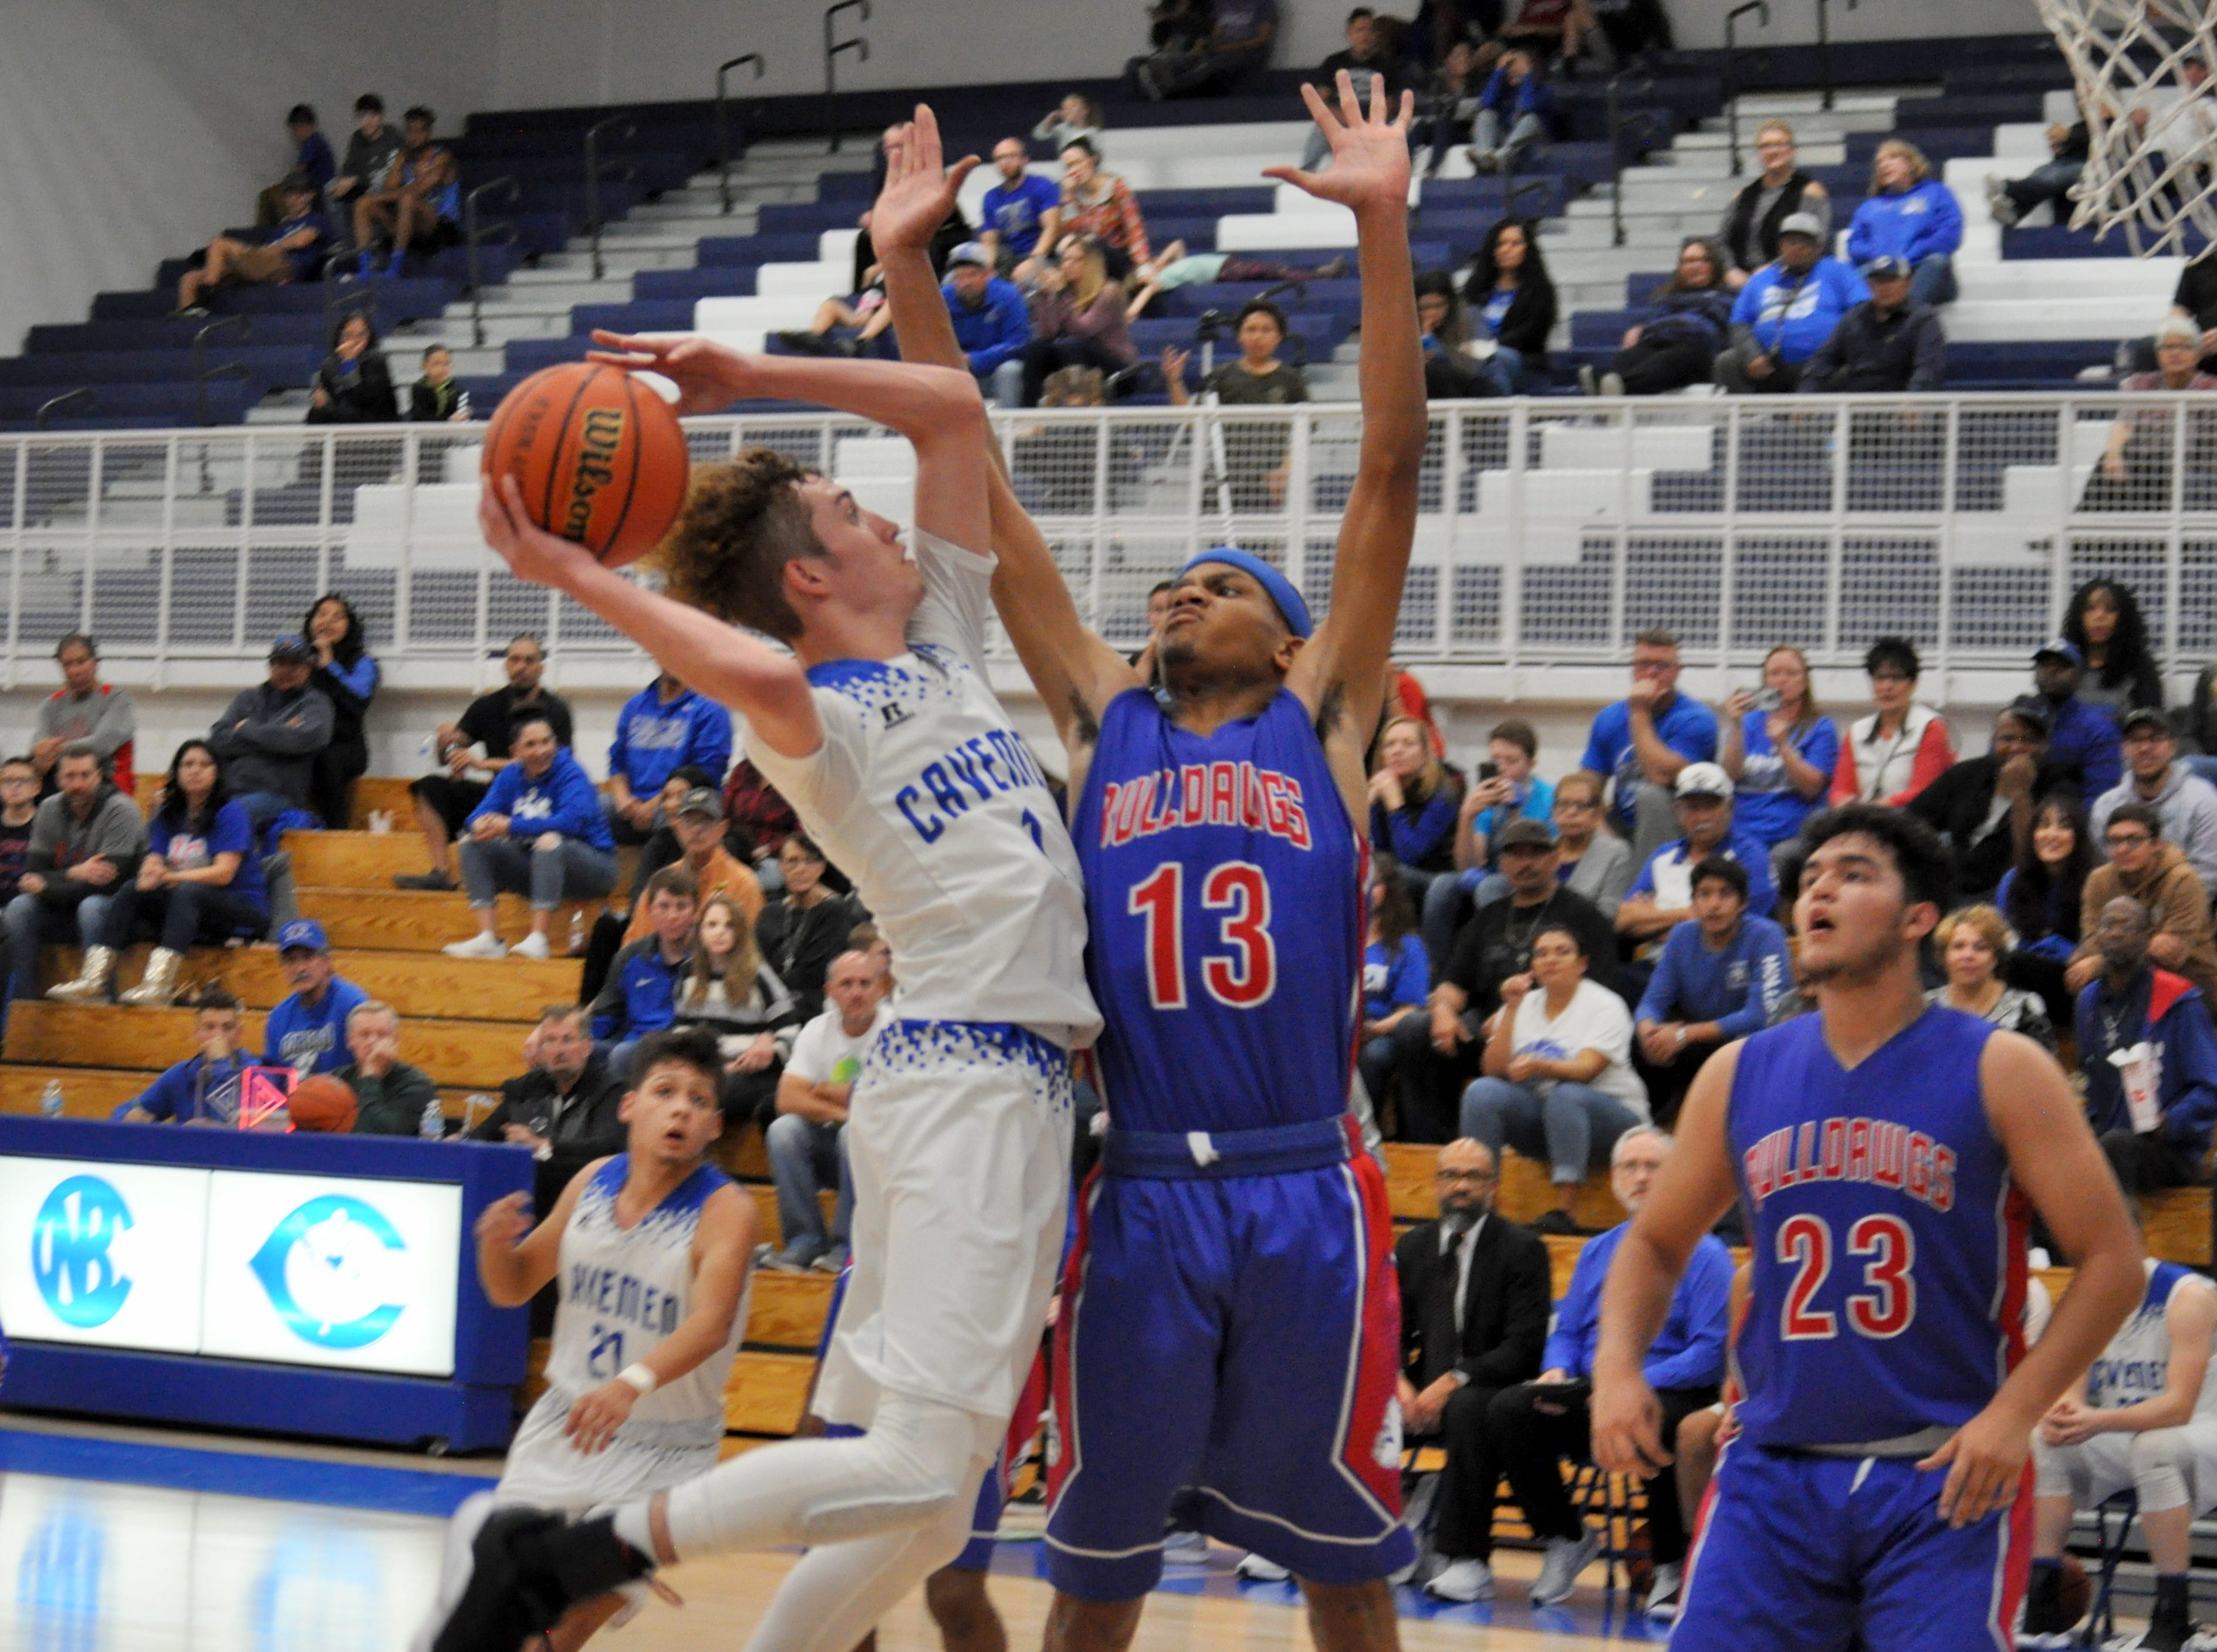 Carlsbad's Josh Sillas goes for a layup while Las Cruces' Ray Brown goes for a block. Both men lead their teams with 19 points during Friday's game.